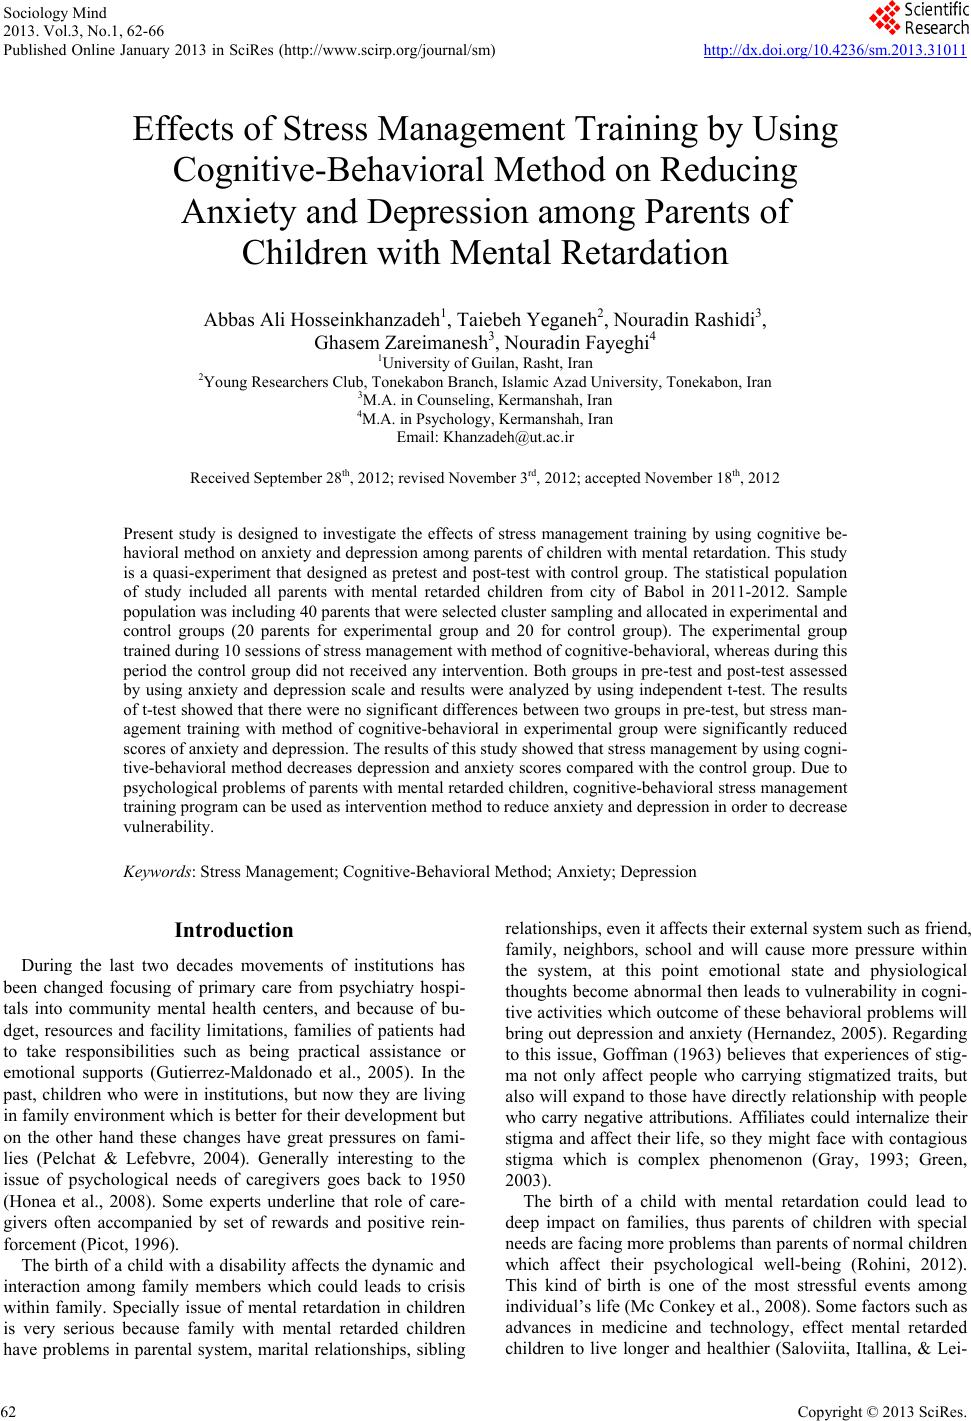 effects of stress management training by using cognitive effects of stress management training by using cognitive behavioral method on reducing anxiety and depression among parents of children mental